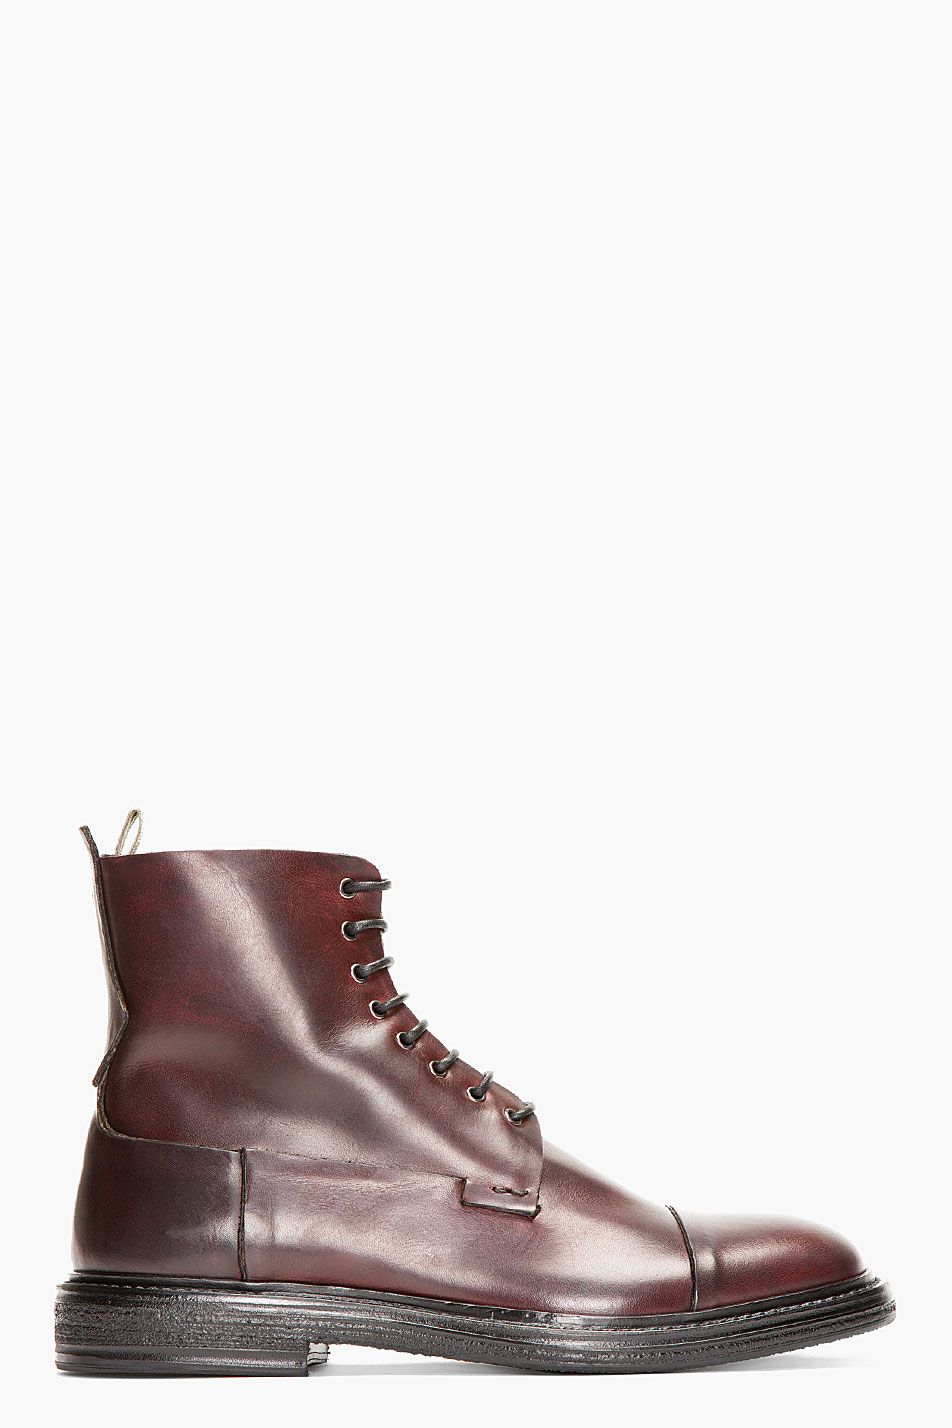 07ed7acef9 OFFICINE CREATIVE Burgundy Leather Bowling Boots